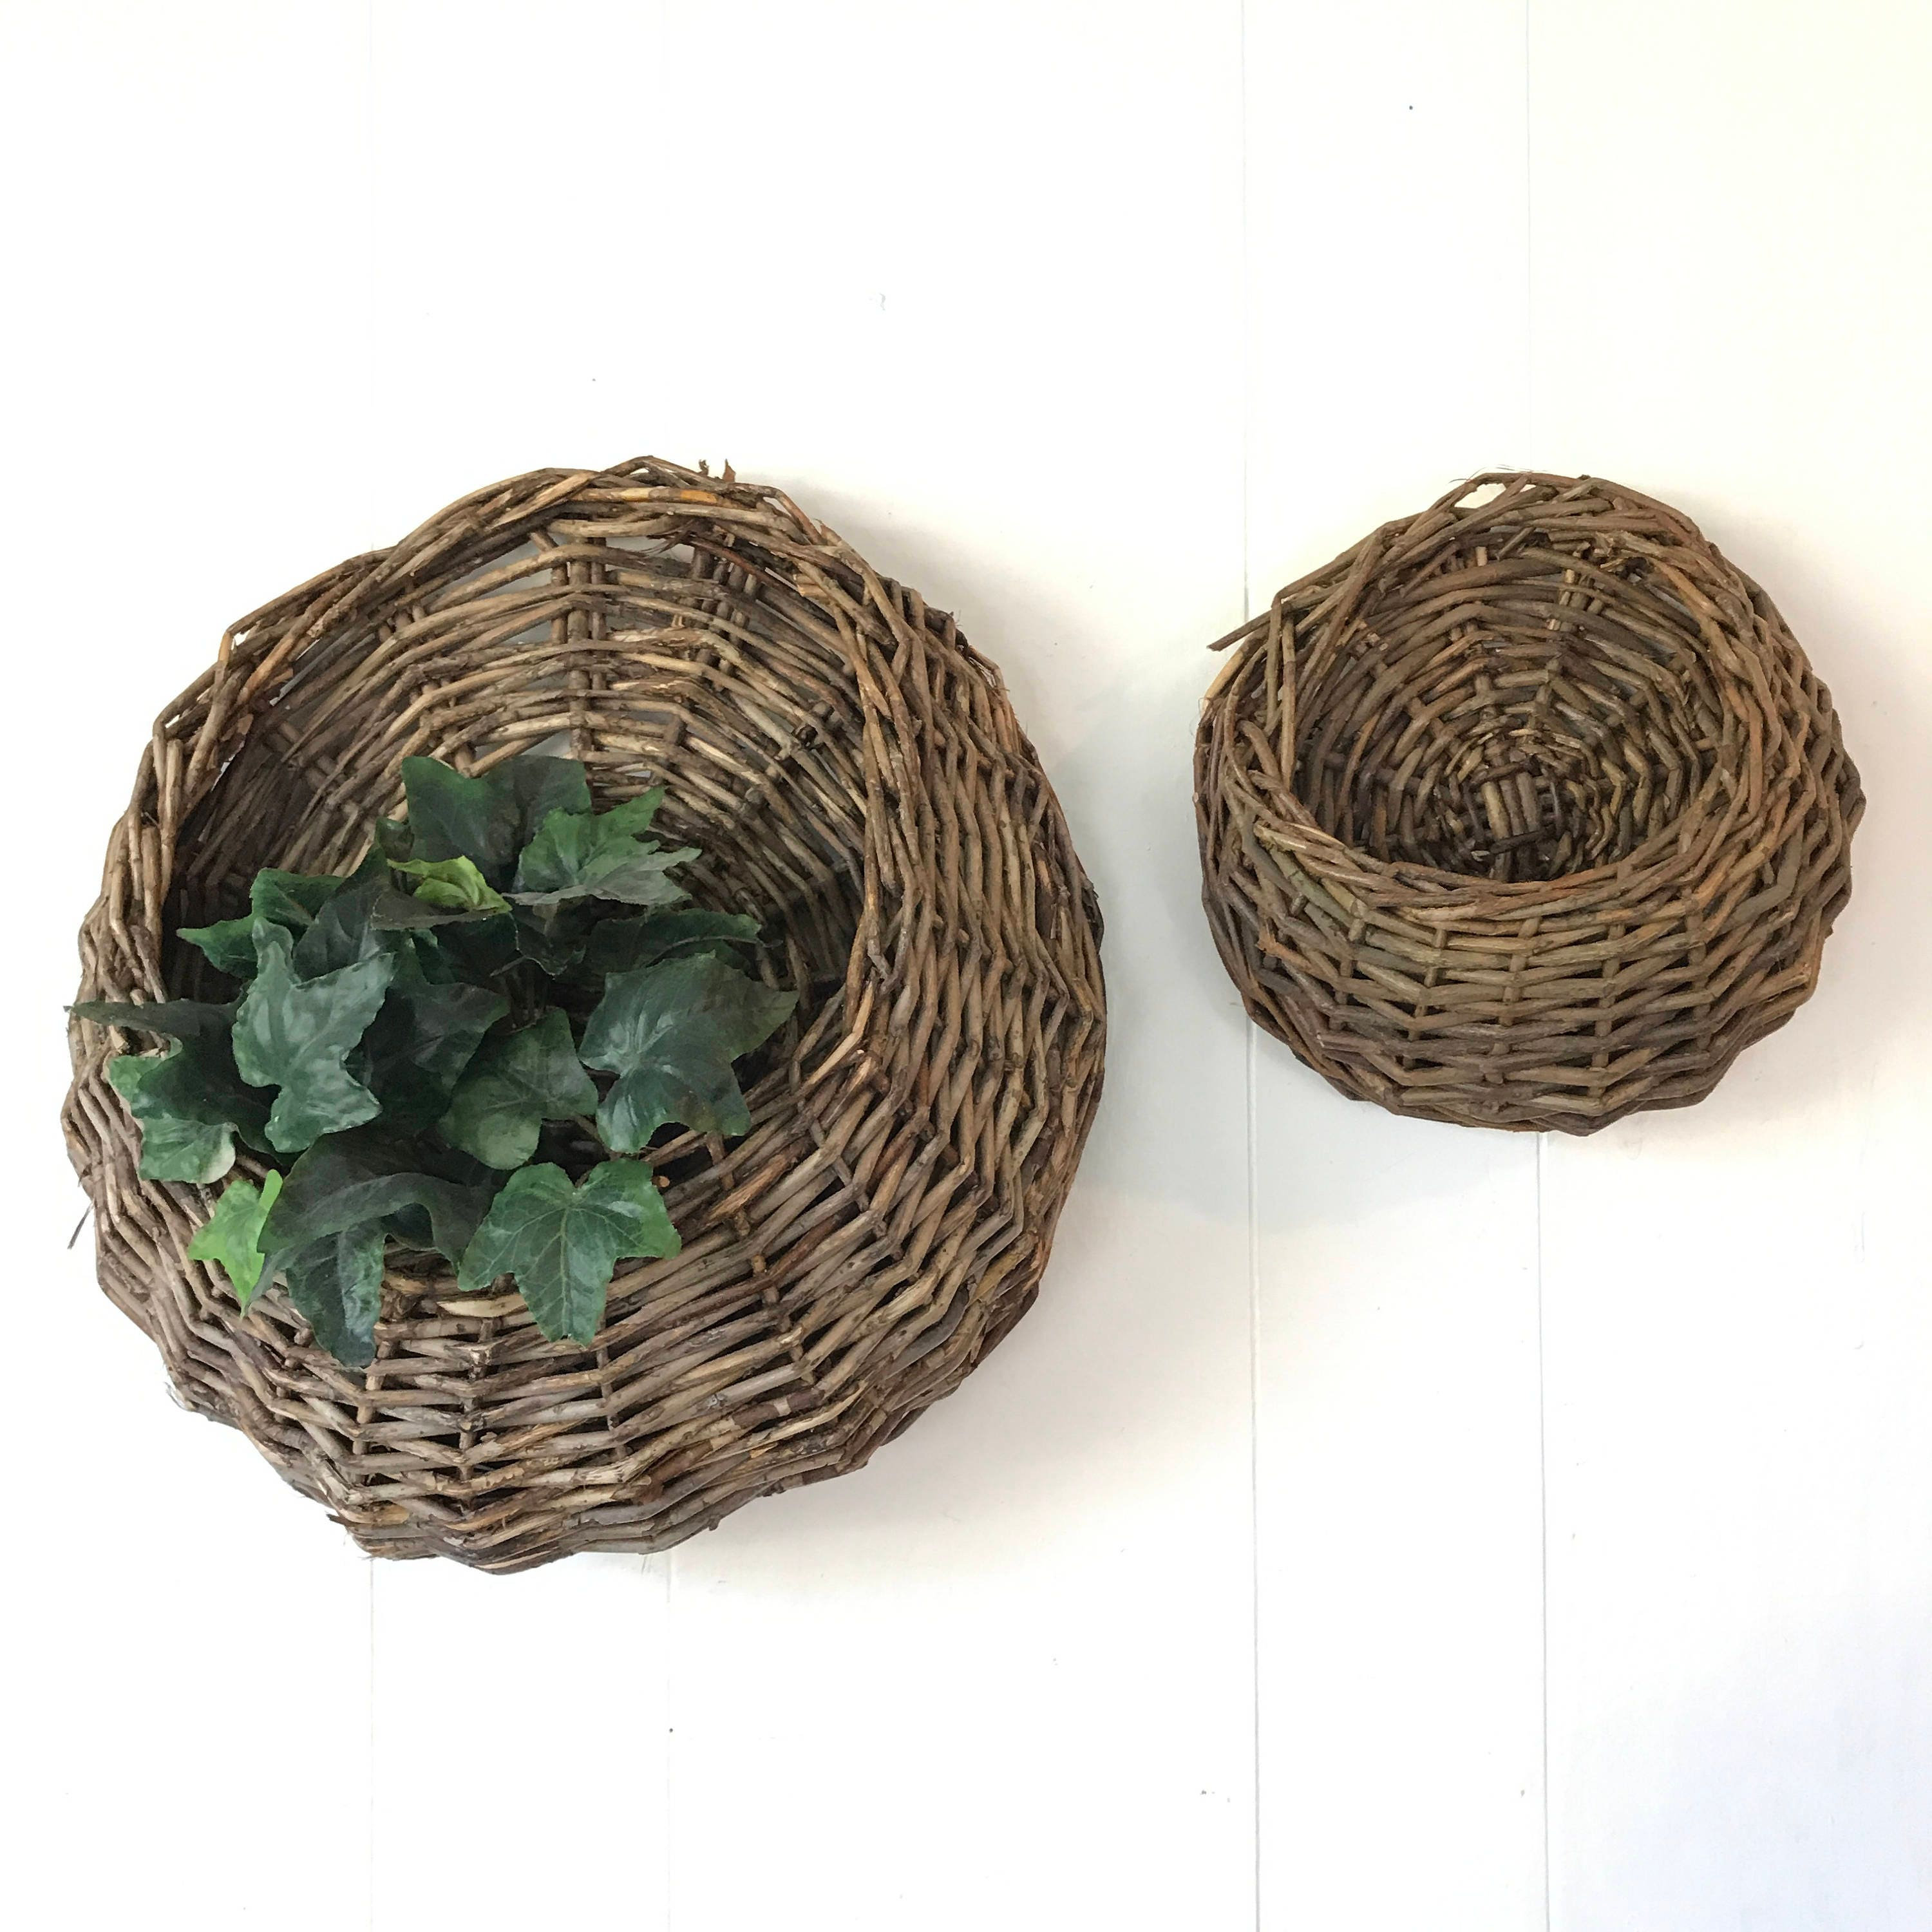 How To Weave A Basket Out Of Twigs : Woven twig baskets hanging wall basket with pocket dark